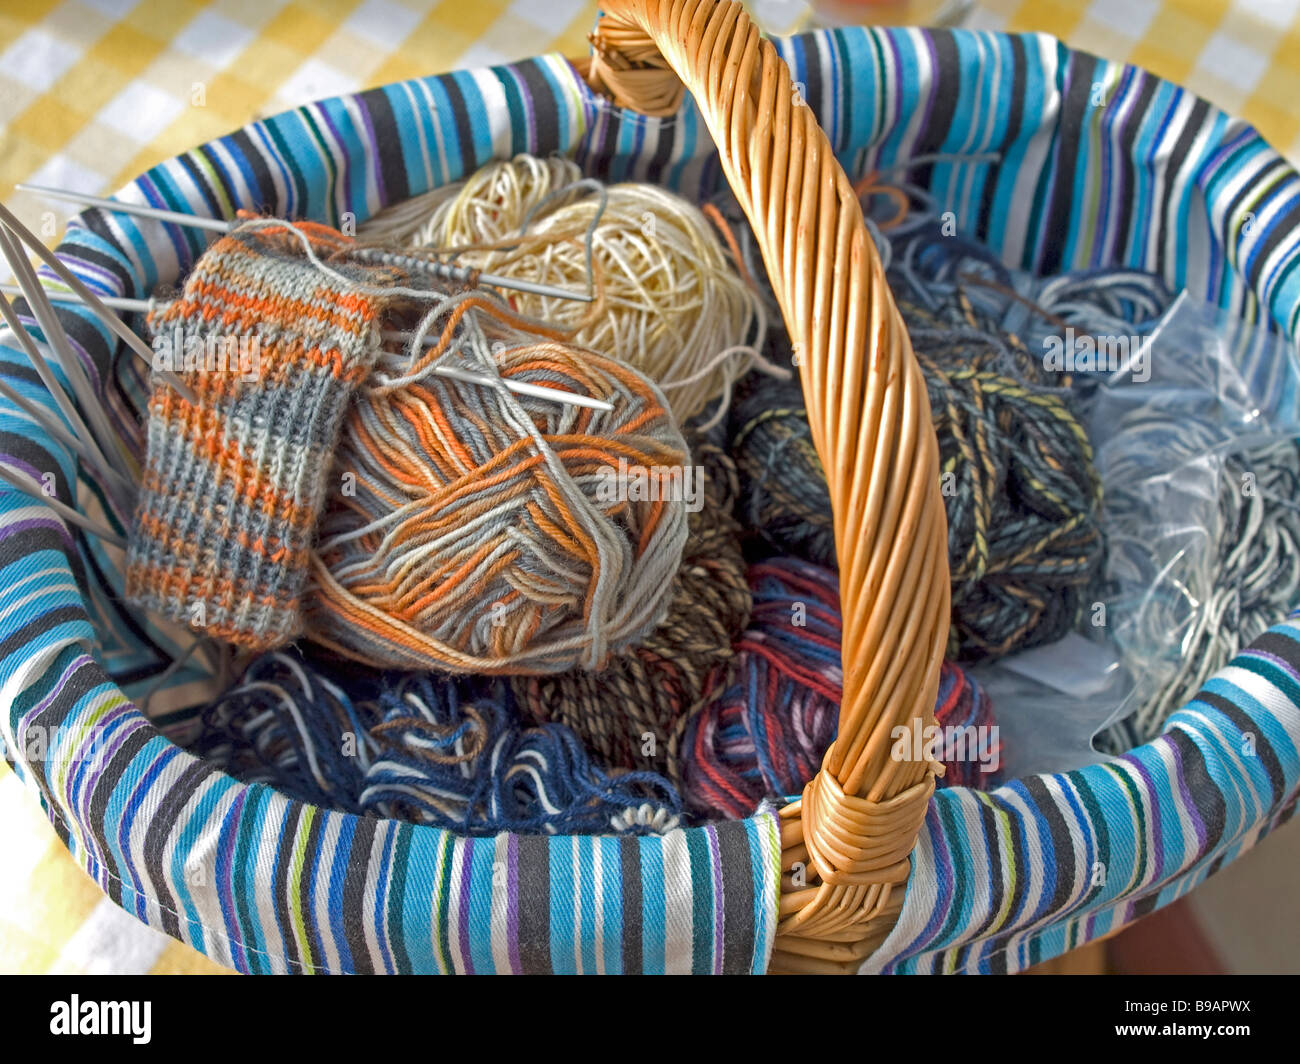 Handicrafts In A Basket With Knitting For Socks Stock Photo